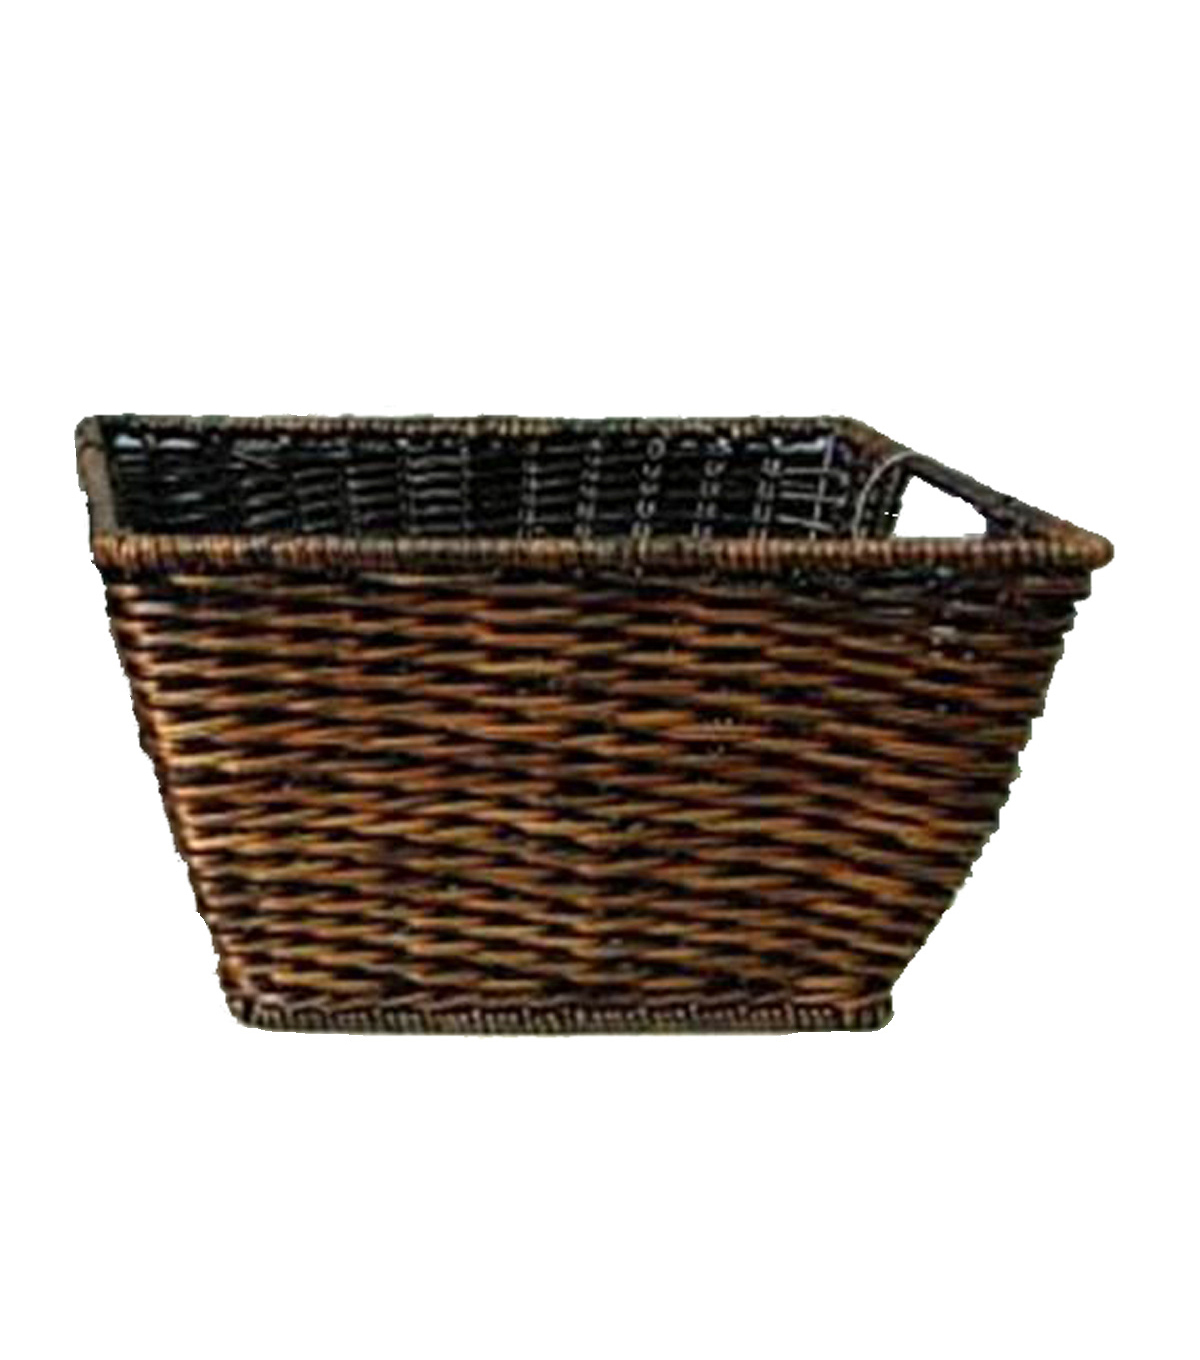 Organizing Essentials Woven Rectangle Fern Basket